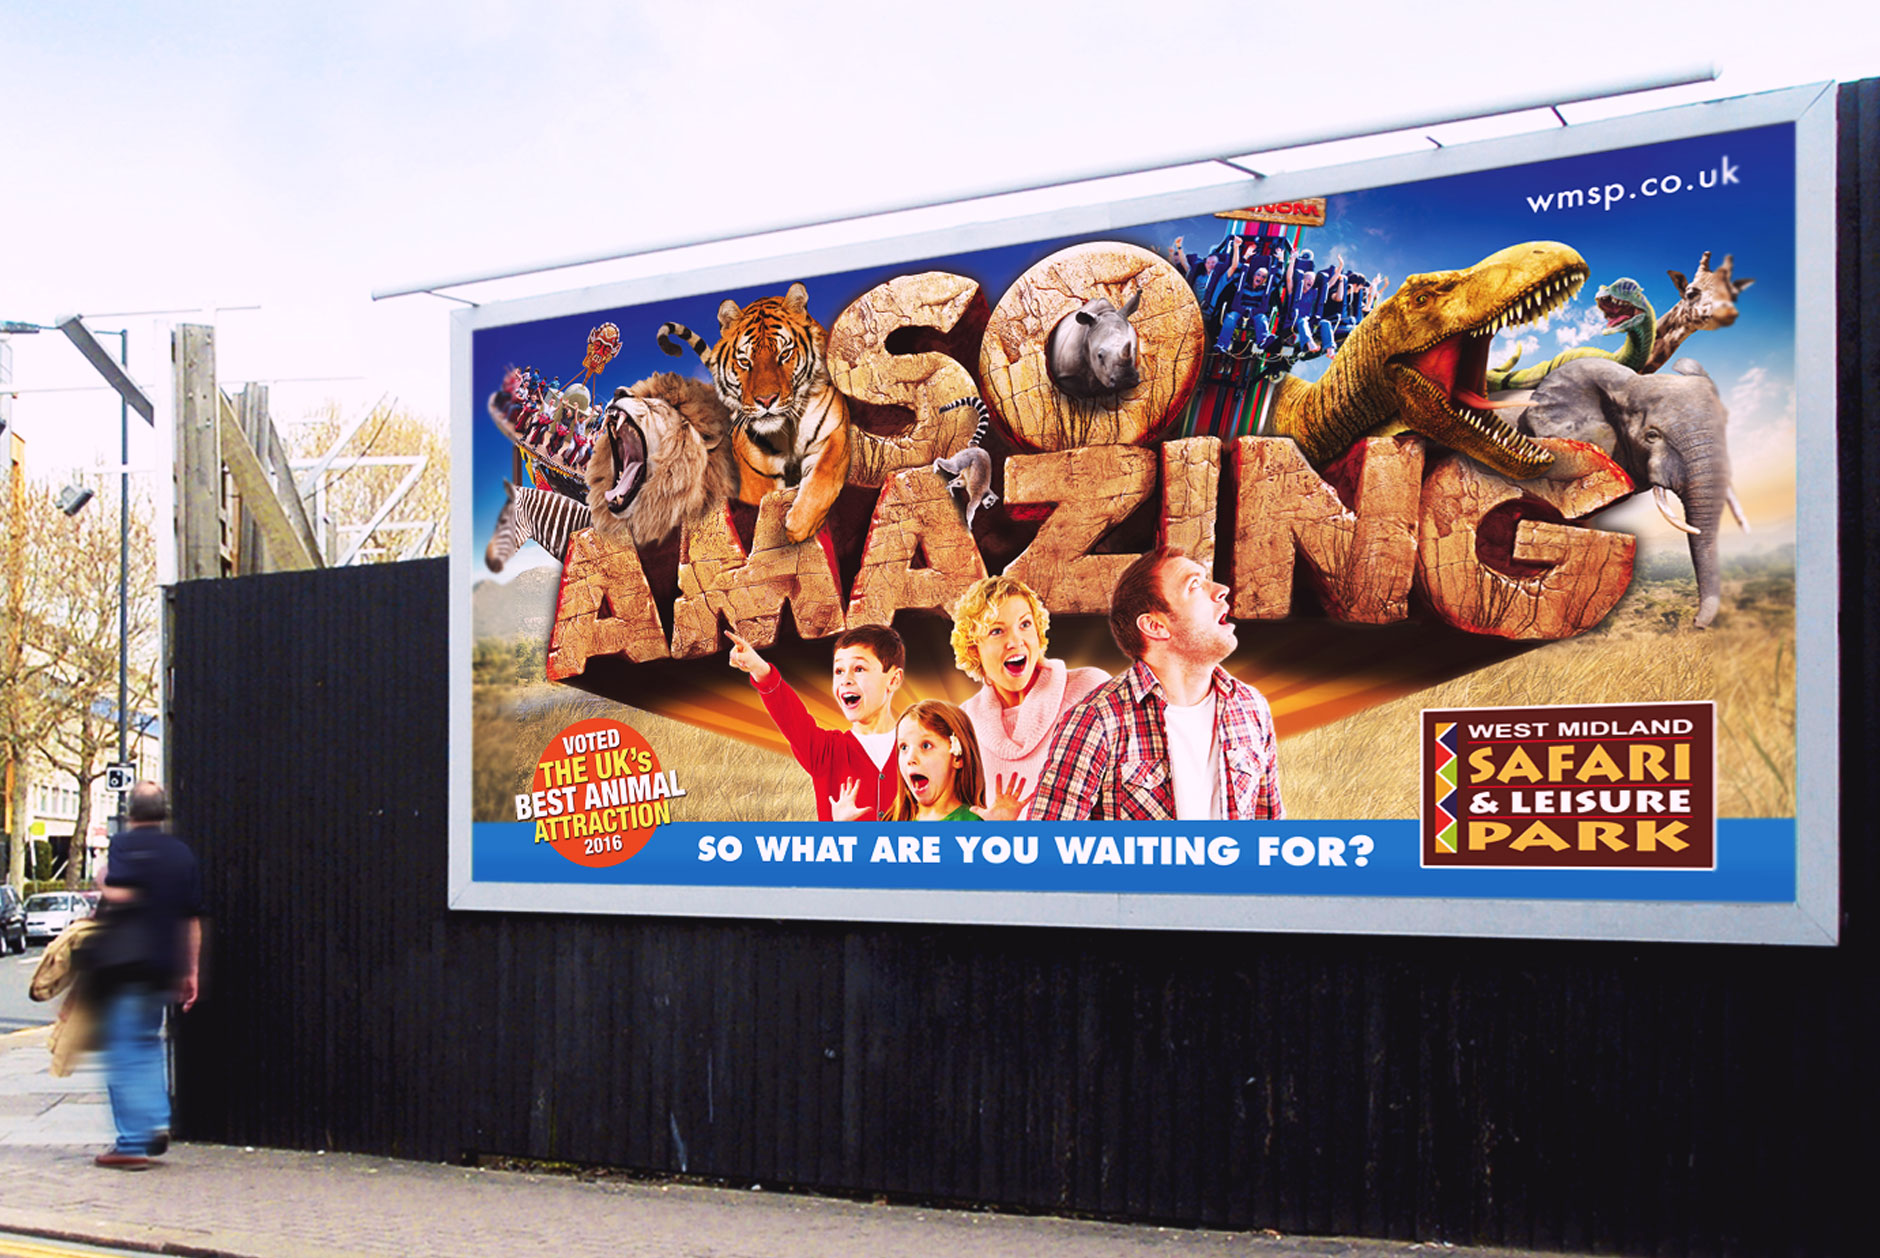 M3's new campaign for WMSP is 'So Amazing'